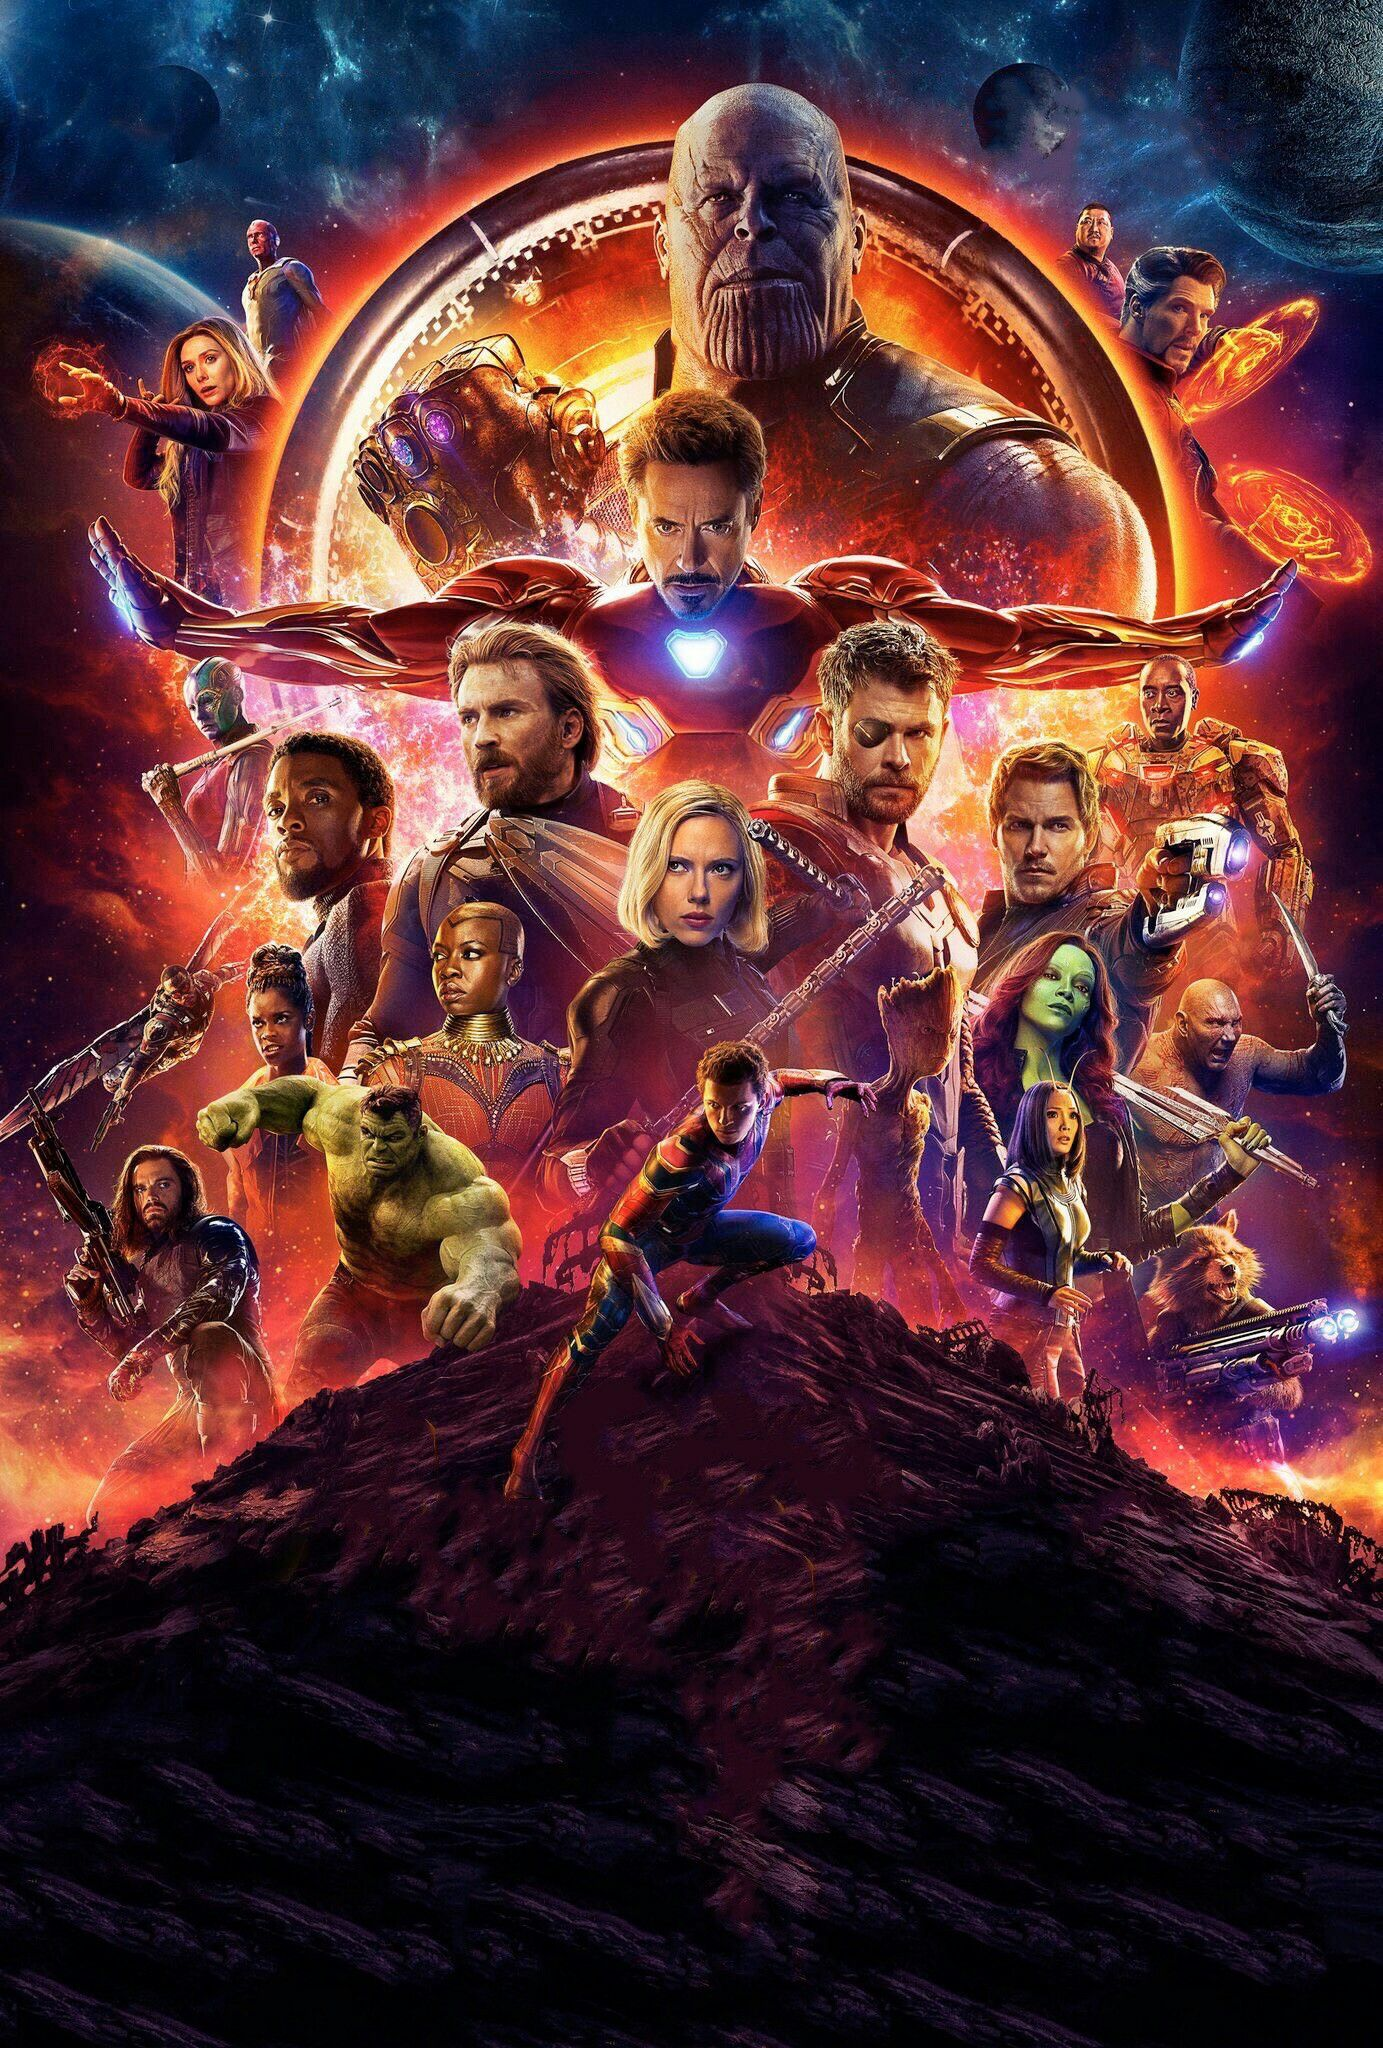 Textless Avengers Infinity War Theatrical Poster By Twitter User